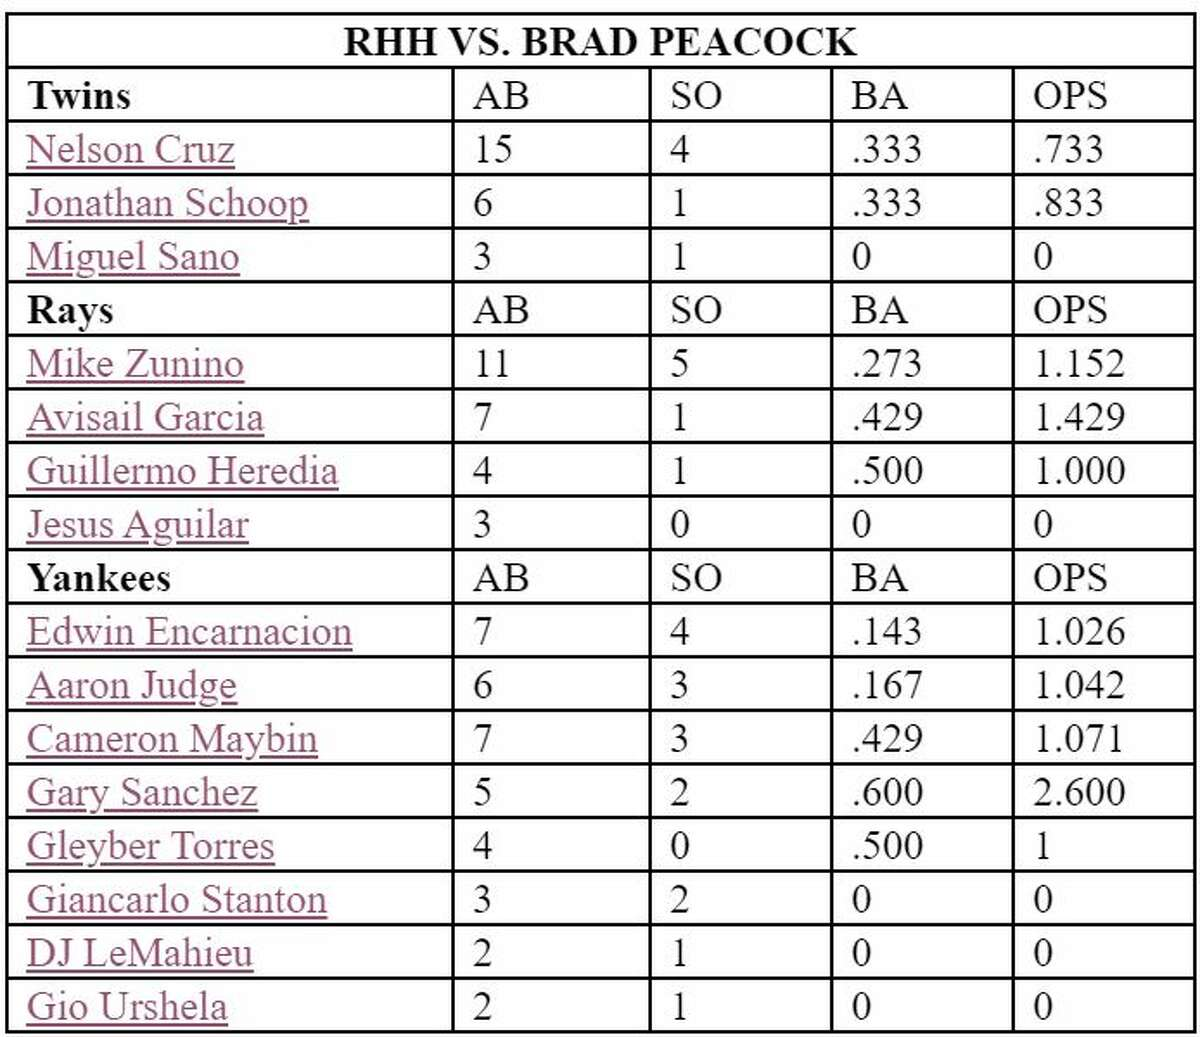 Stats vs. Brad Peacock of righthanded Minnesota Twins, Tampa Bay Rays and New York Yankees hitters.